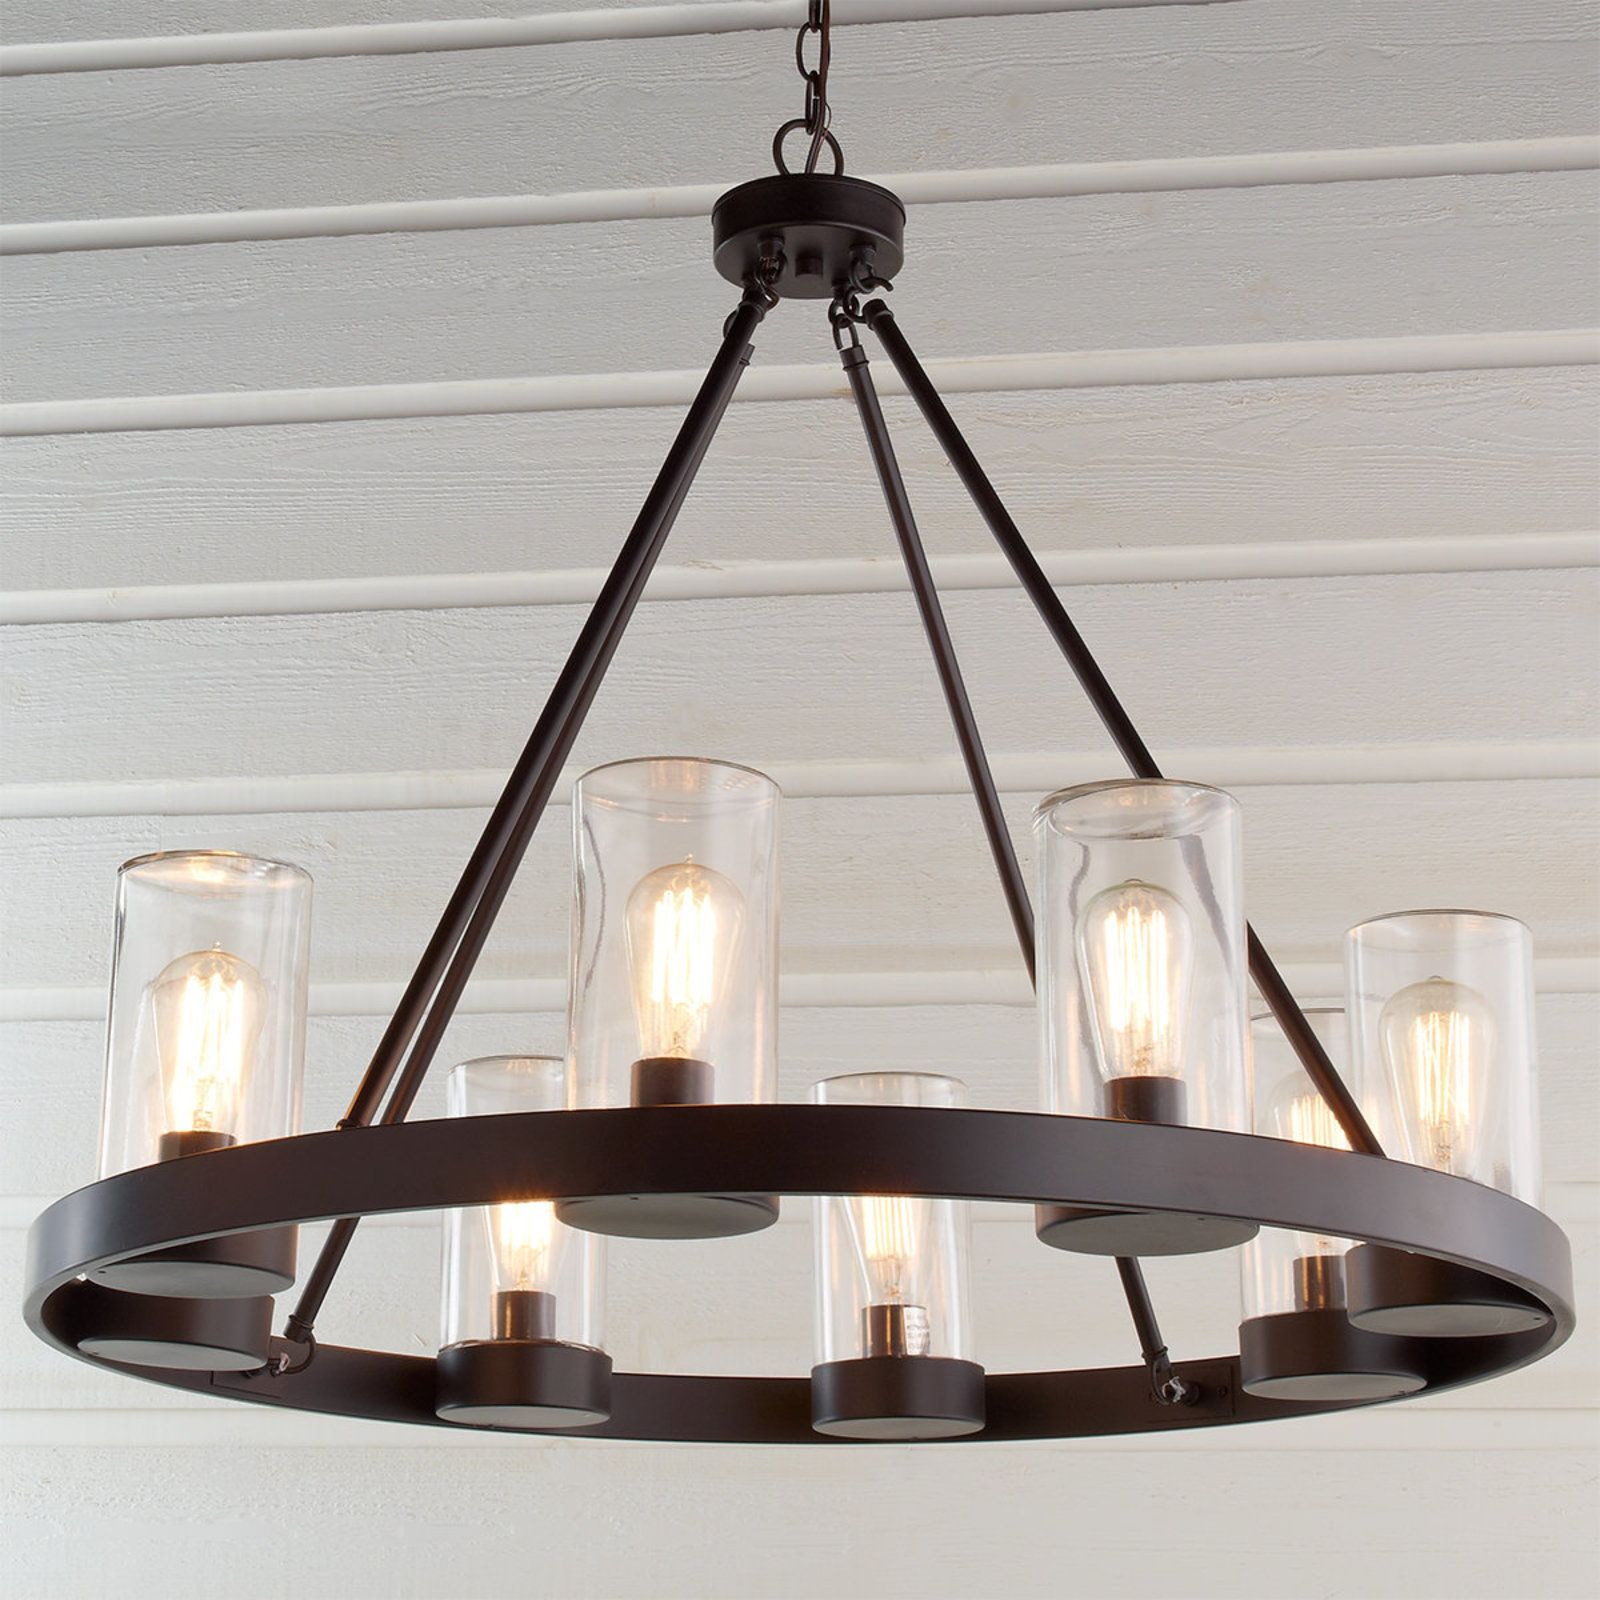 industrial lighting chandelier. $500 round industrial indoor/outdoor chandelier dark_bronze lighting